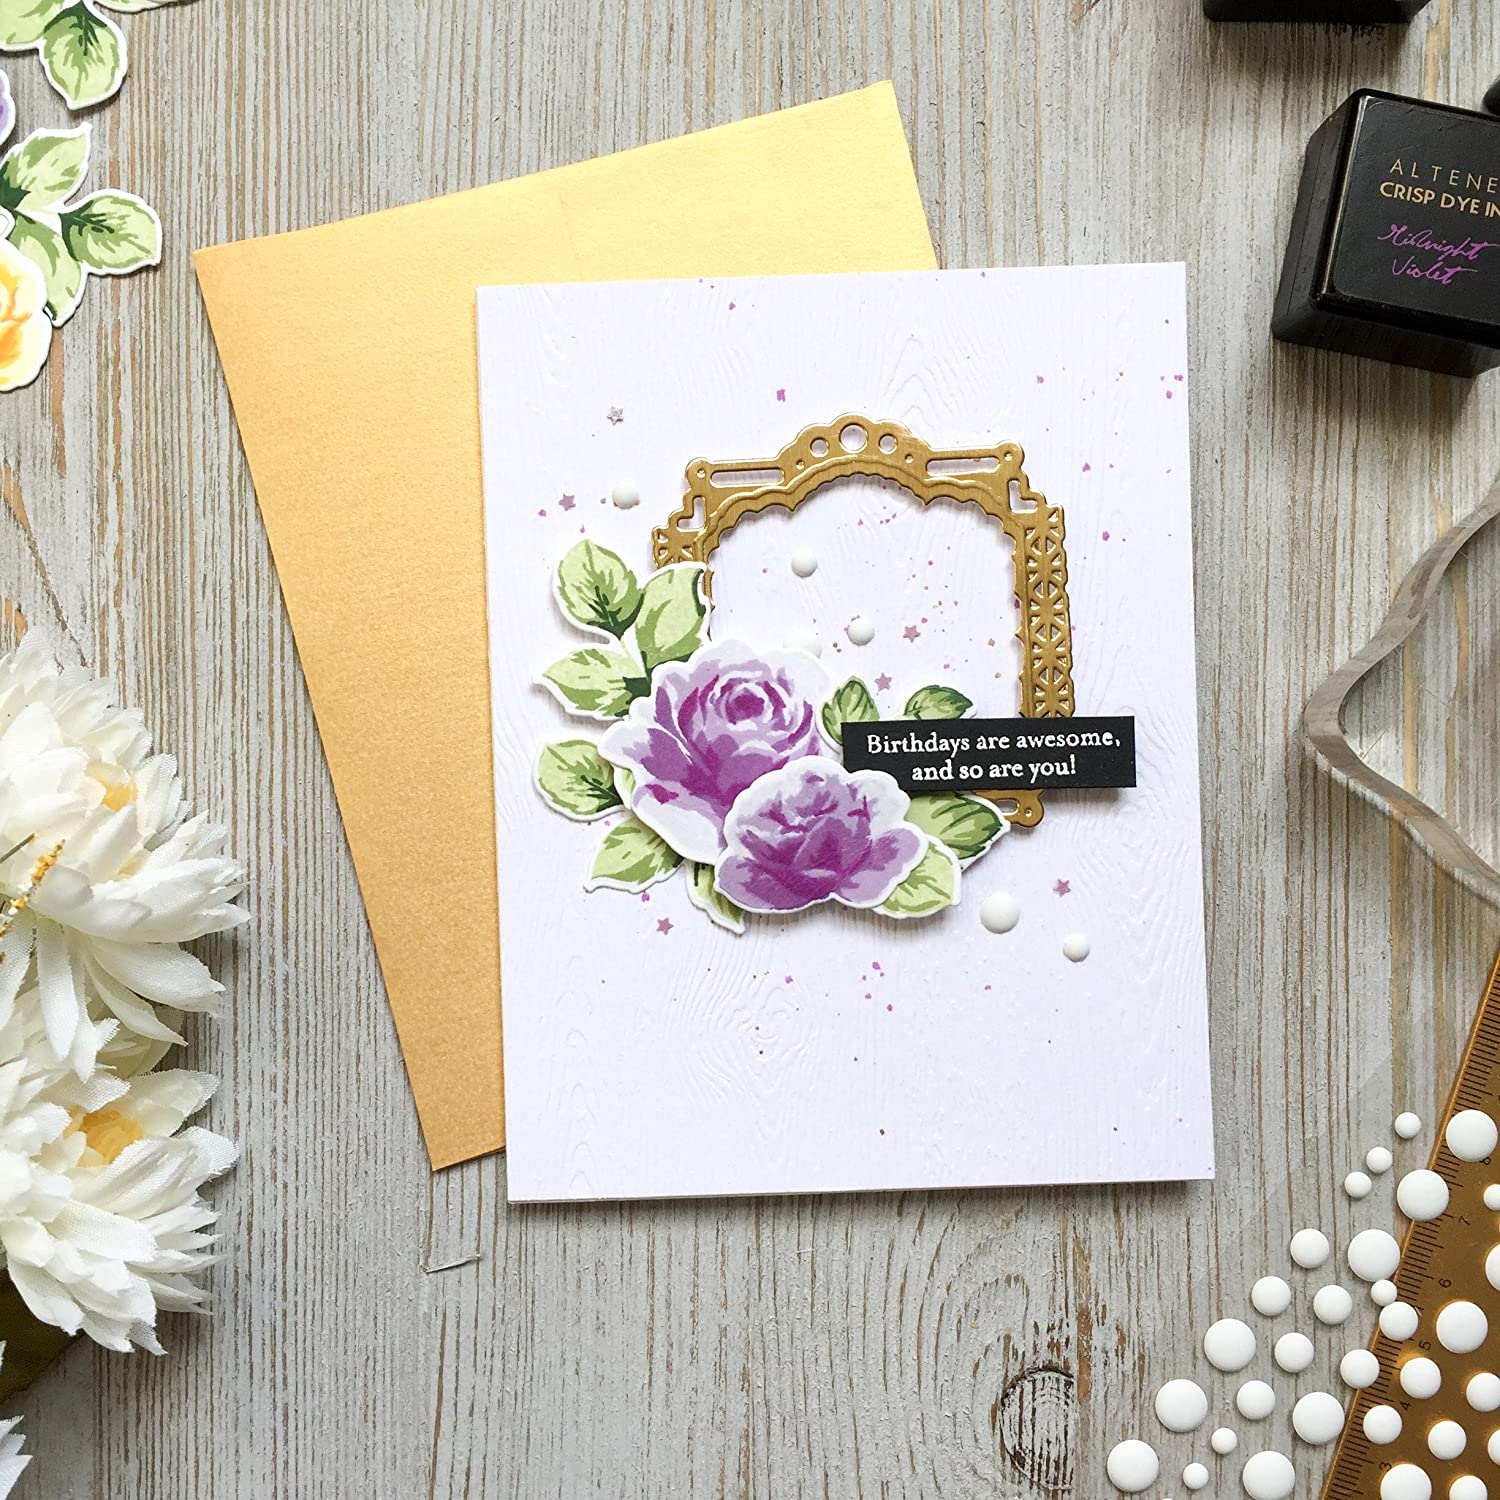 Amazon flower birthday card roses gold happy birthday amazon flower birthday card roses gold happy birthday a2 handmade greeting card purple flowers rose birthday wishes friend birthday izmirmasajfo